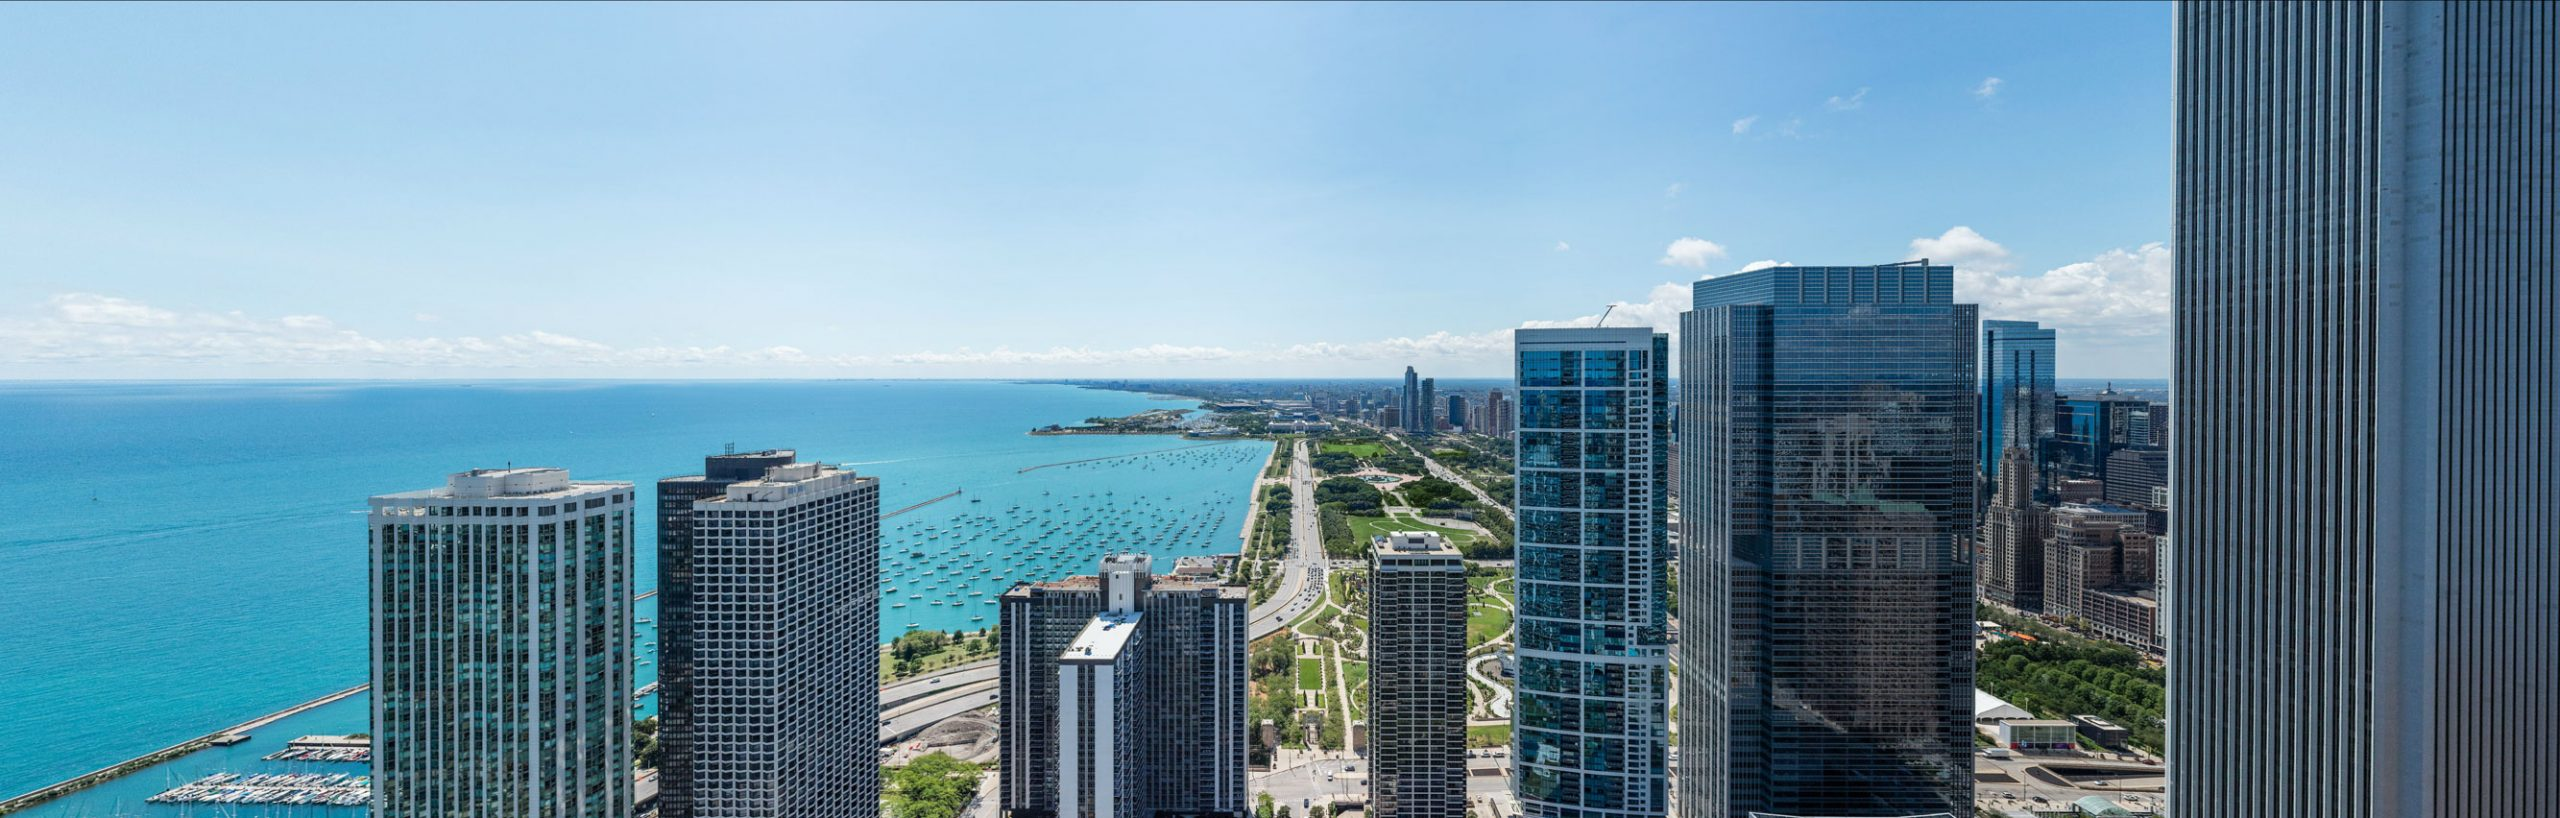 landscape photos of lakeshore east towers and Lake Michigan